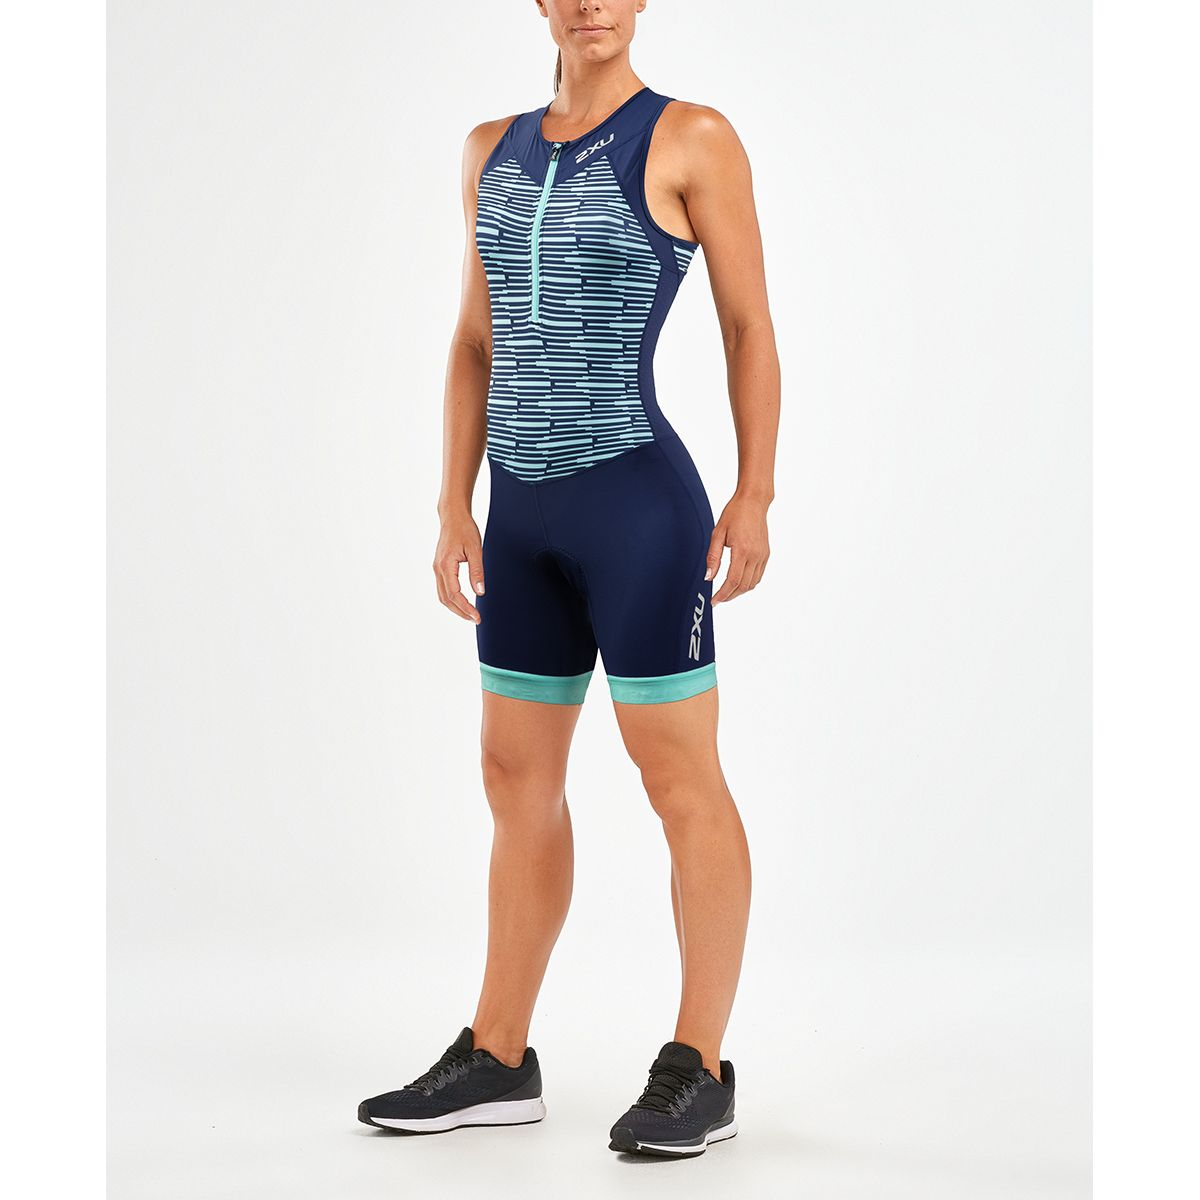 WOMEN ACTIVE TRISUIT